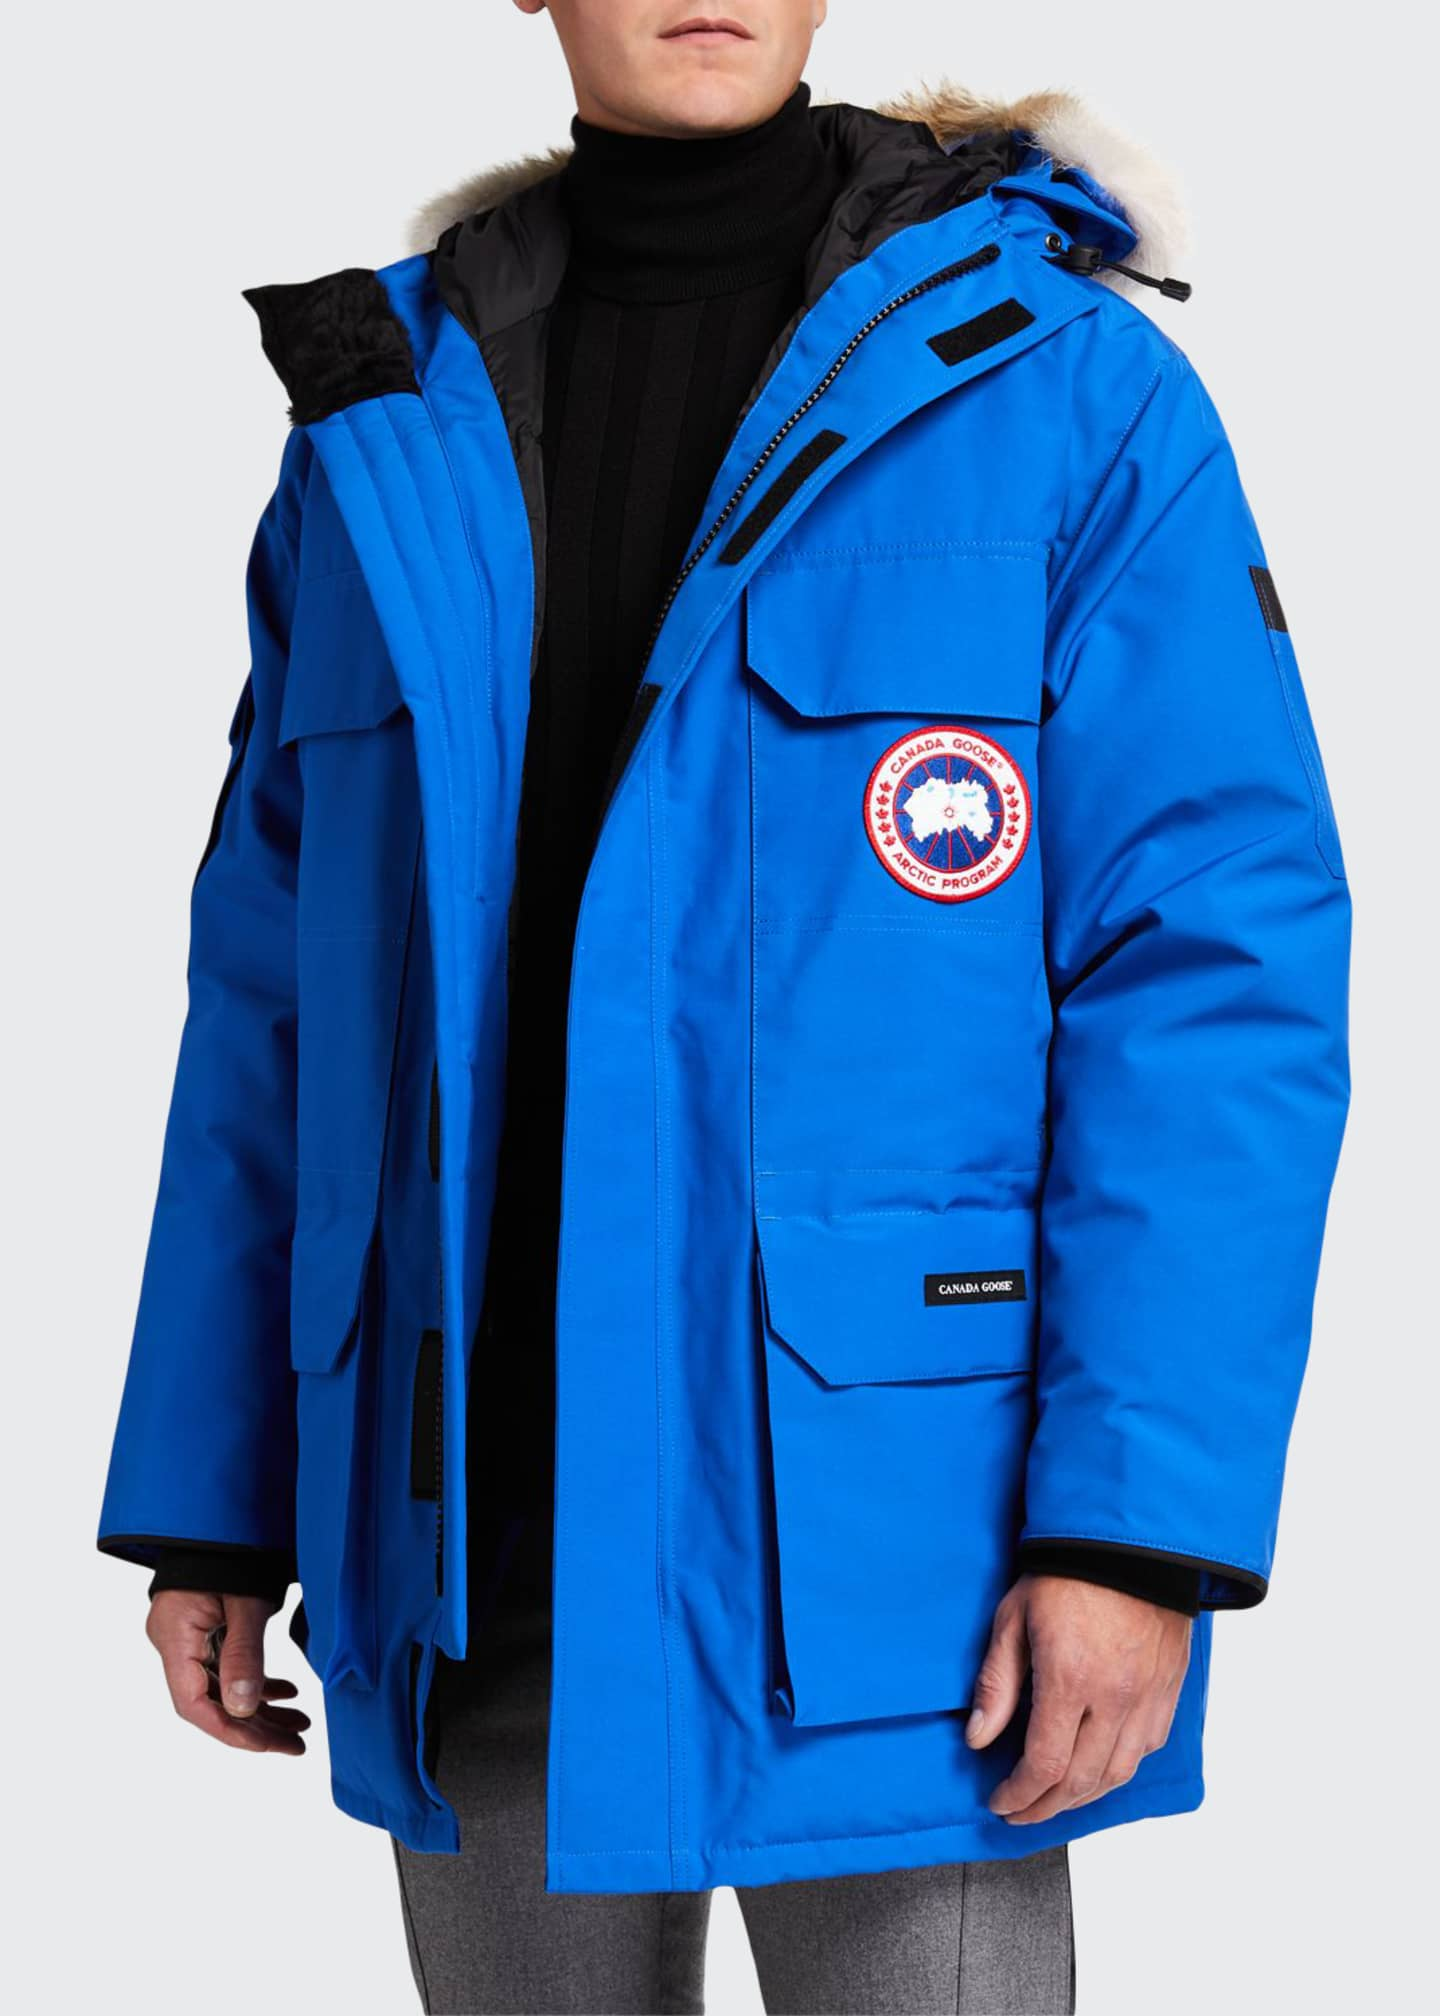 Canada Goose Men's Expedition Hooded Parka Coat w/